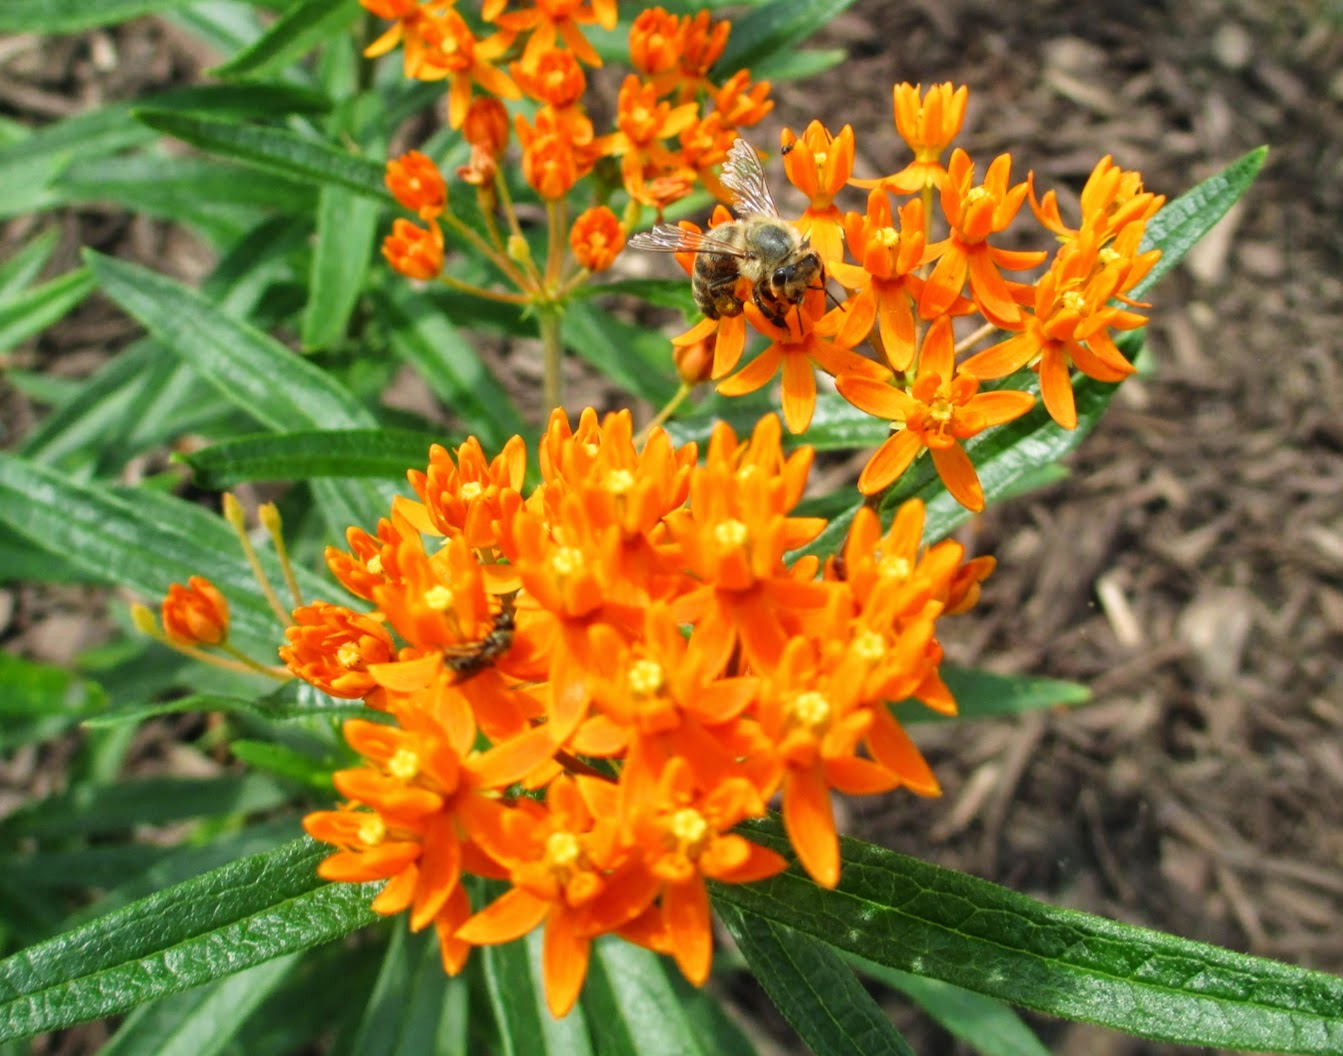 Orange flowers of Asclepias tuberosa